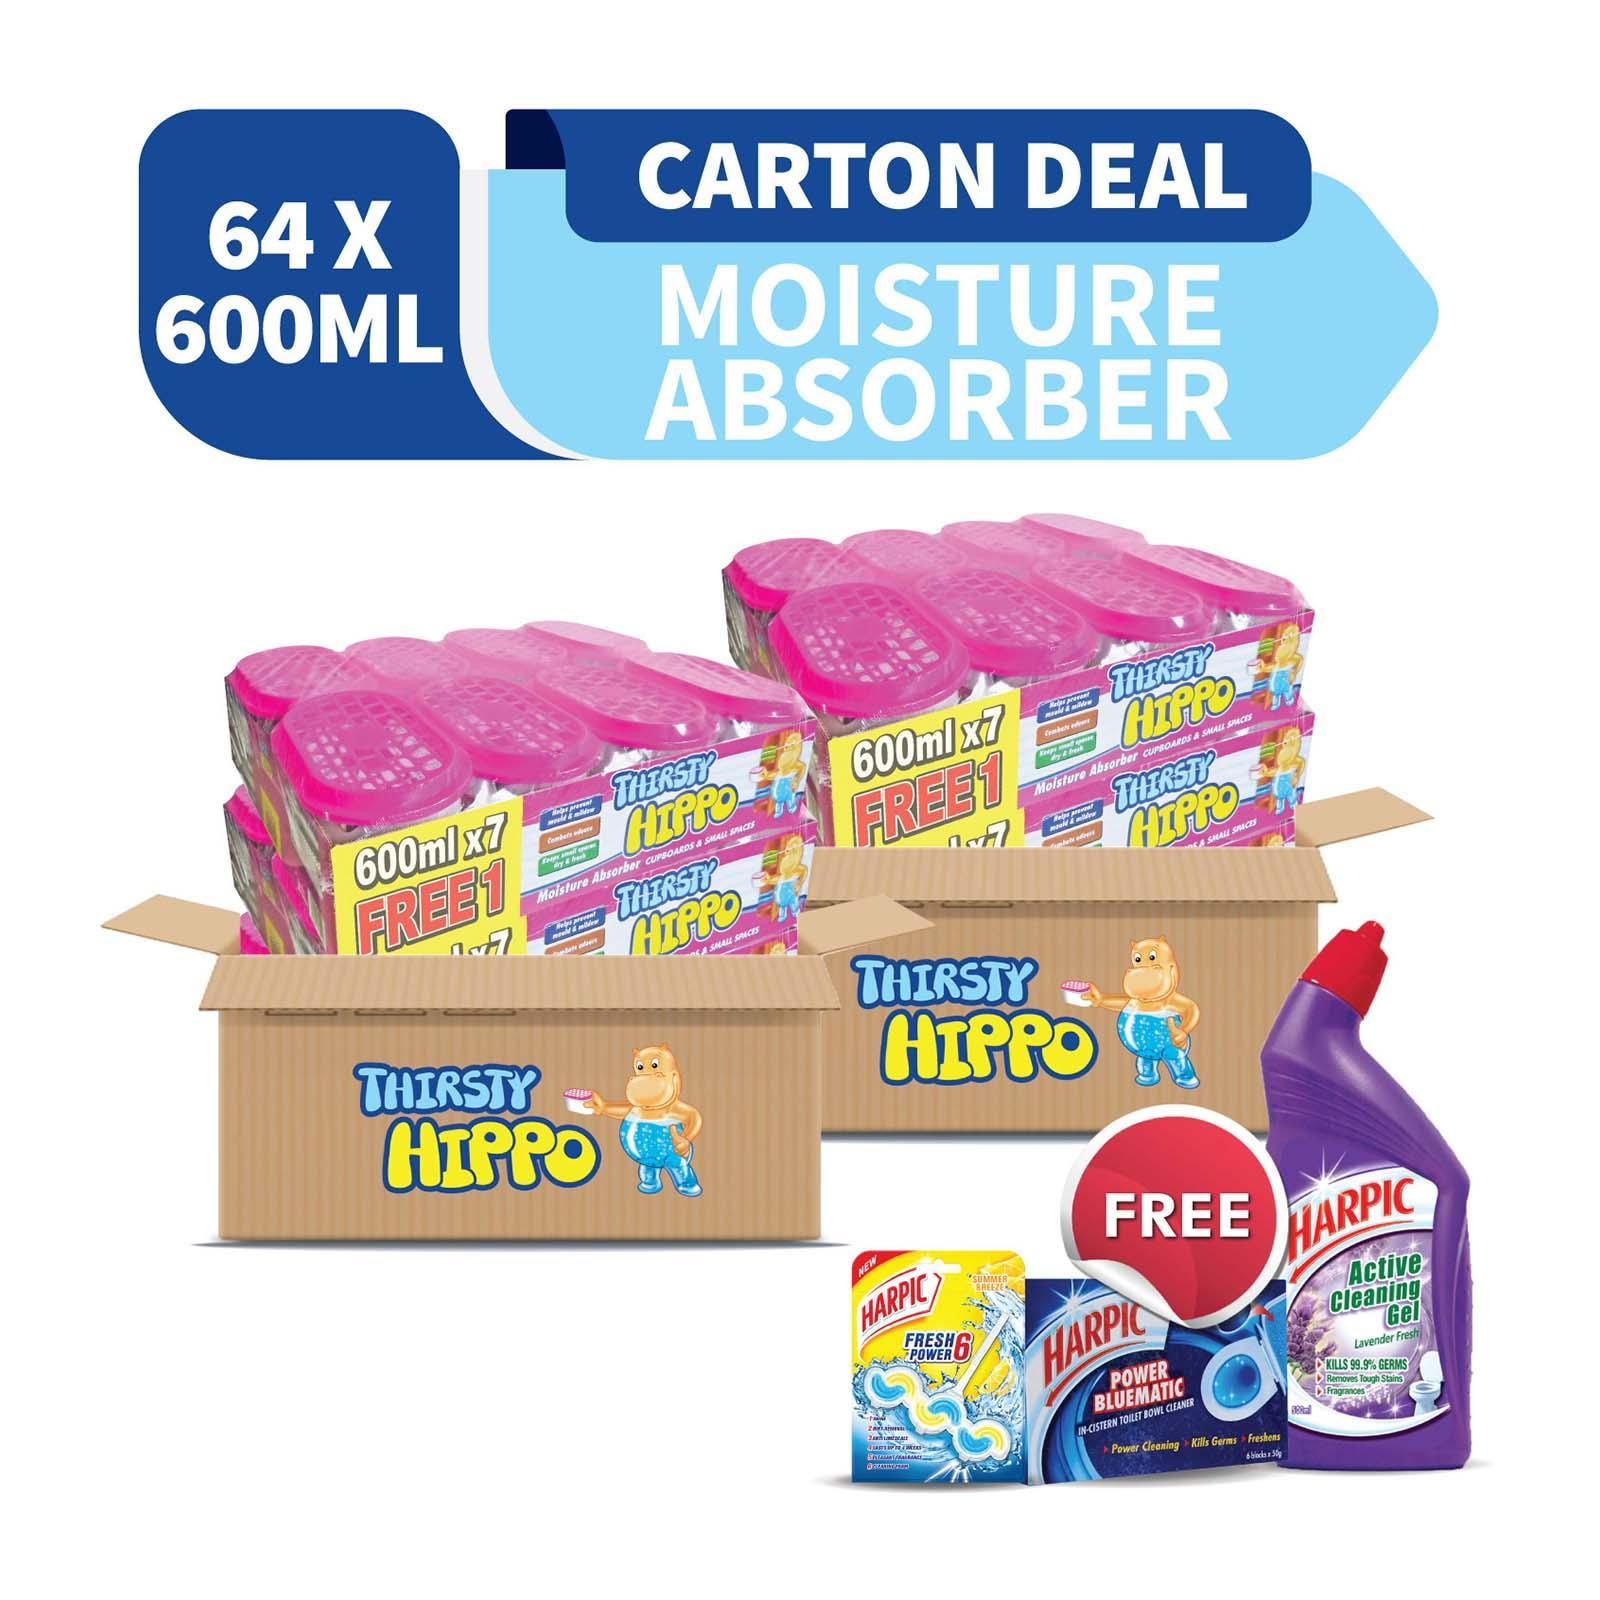 Thirsty Hippo Carton Deal Free Harpic Active Cleaning Gel Lavender And Harpic Fresh Power 6 Wave Summer Breeze And Harpic Bluematic